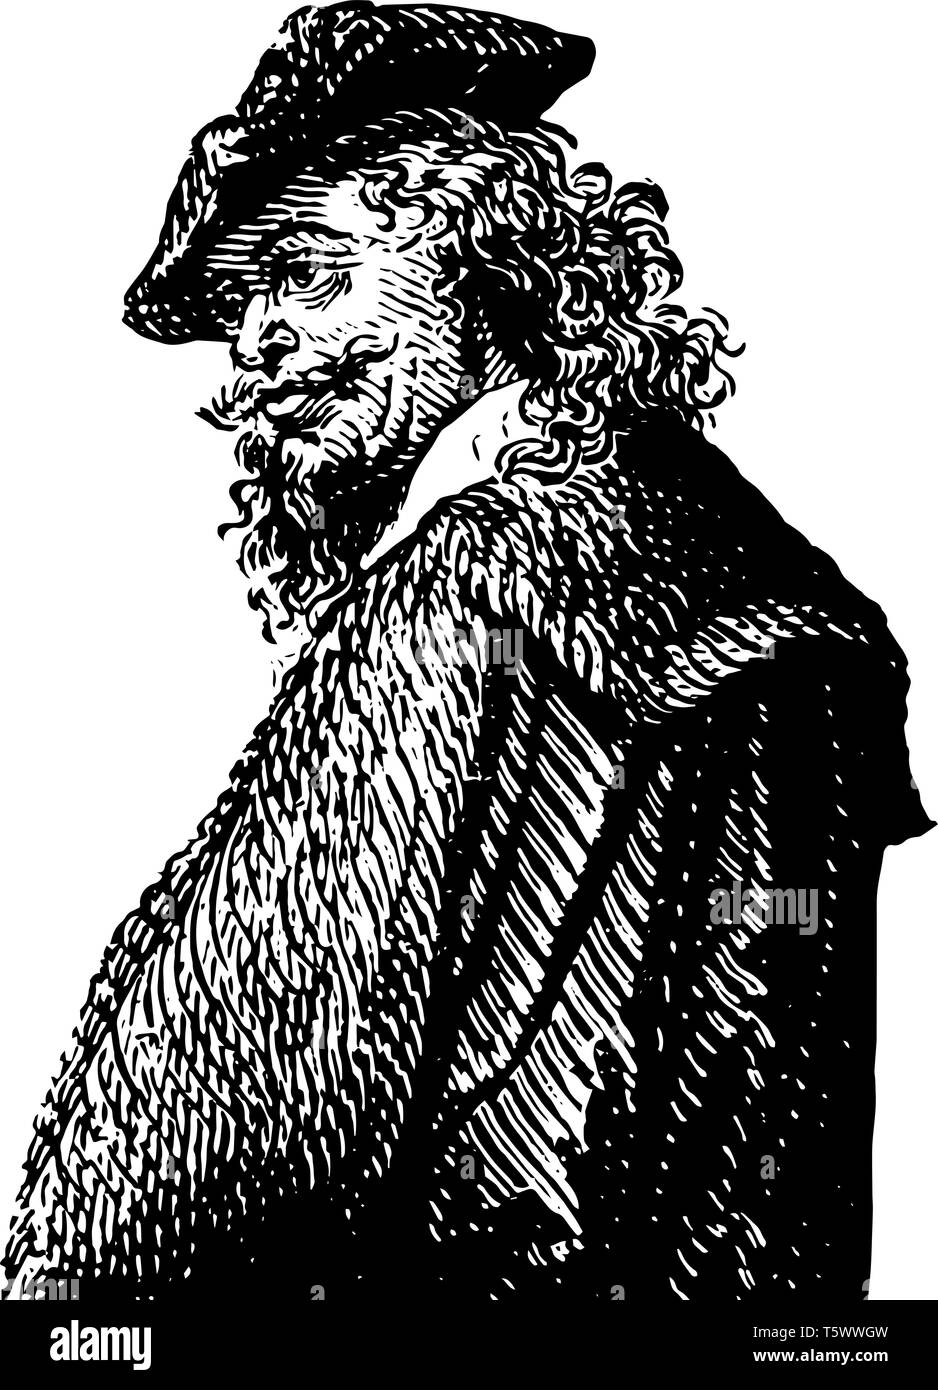 Rembrandt Van Rhyn 1606 to 1669 he was a Dutch draughtsman painter and printmaker vintage line drawing or engraving illustration - Stock Vector